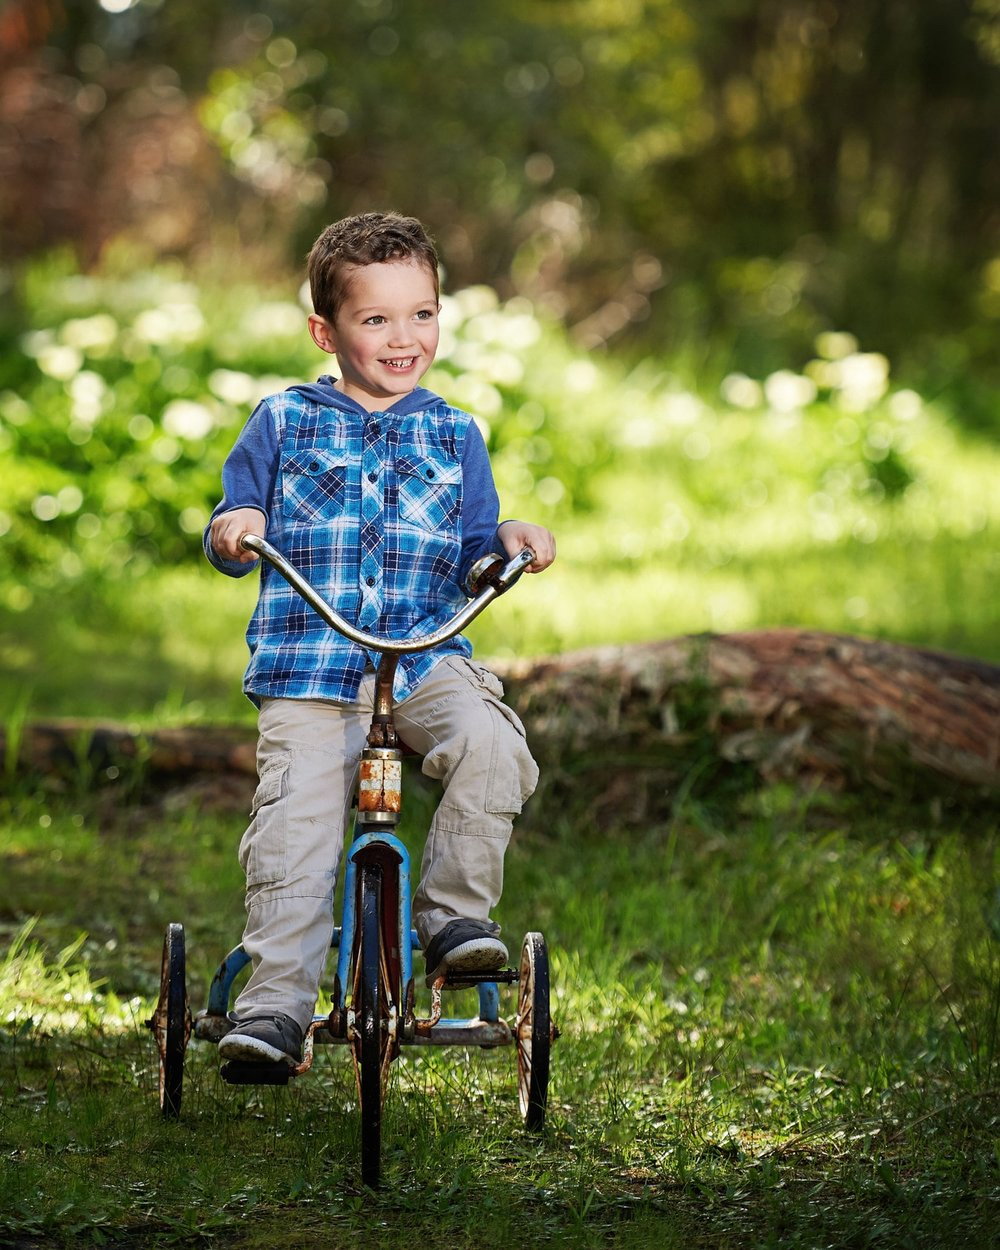 Professional outdoor photo of boy on bike